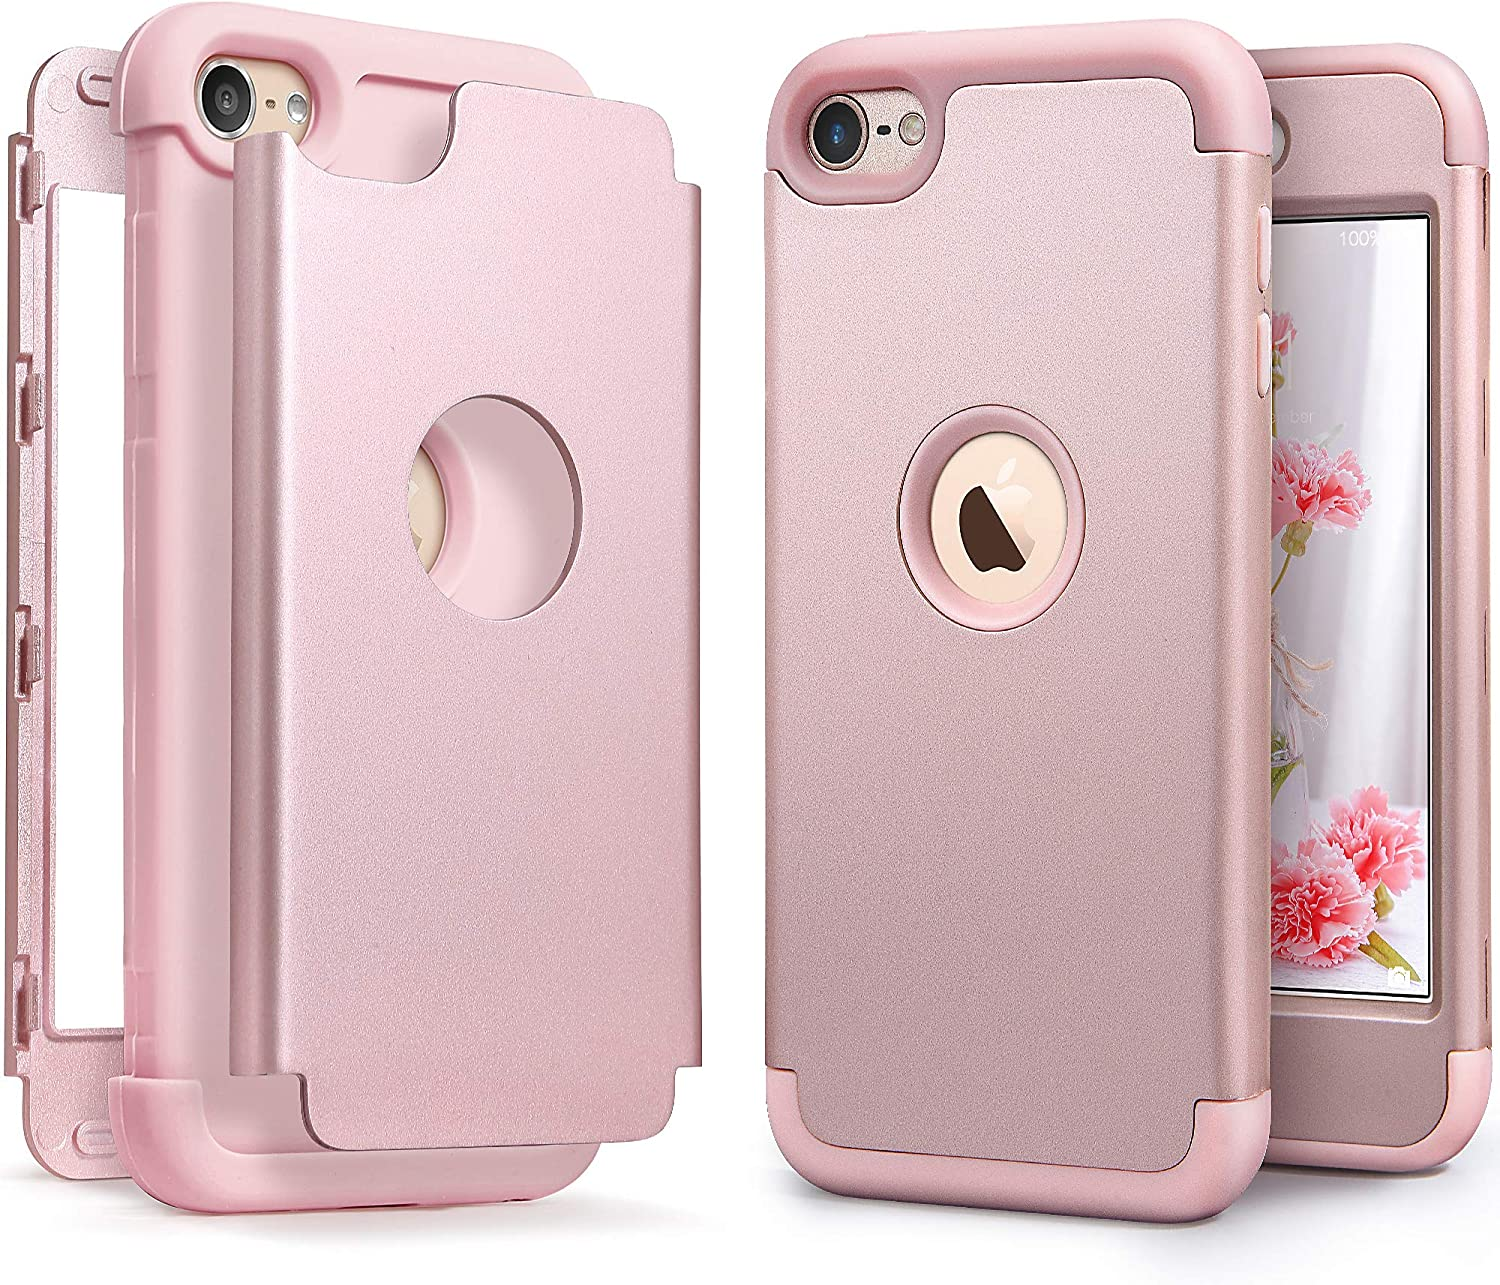 iPod Touch Armor Case with 2 Screen Protector, IDWELL [Three Layer Armor Series] Heavy Duty Protection Shockproof High Impact Protective Case for Apple iPod Touch 5 6 7th Generation (Rose Gold)